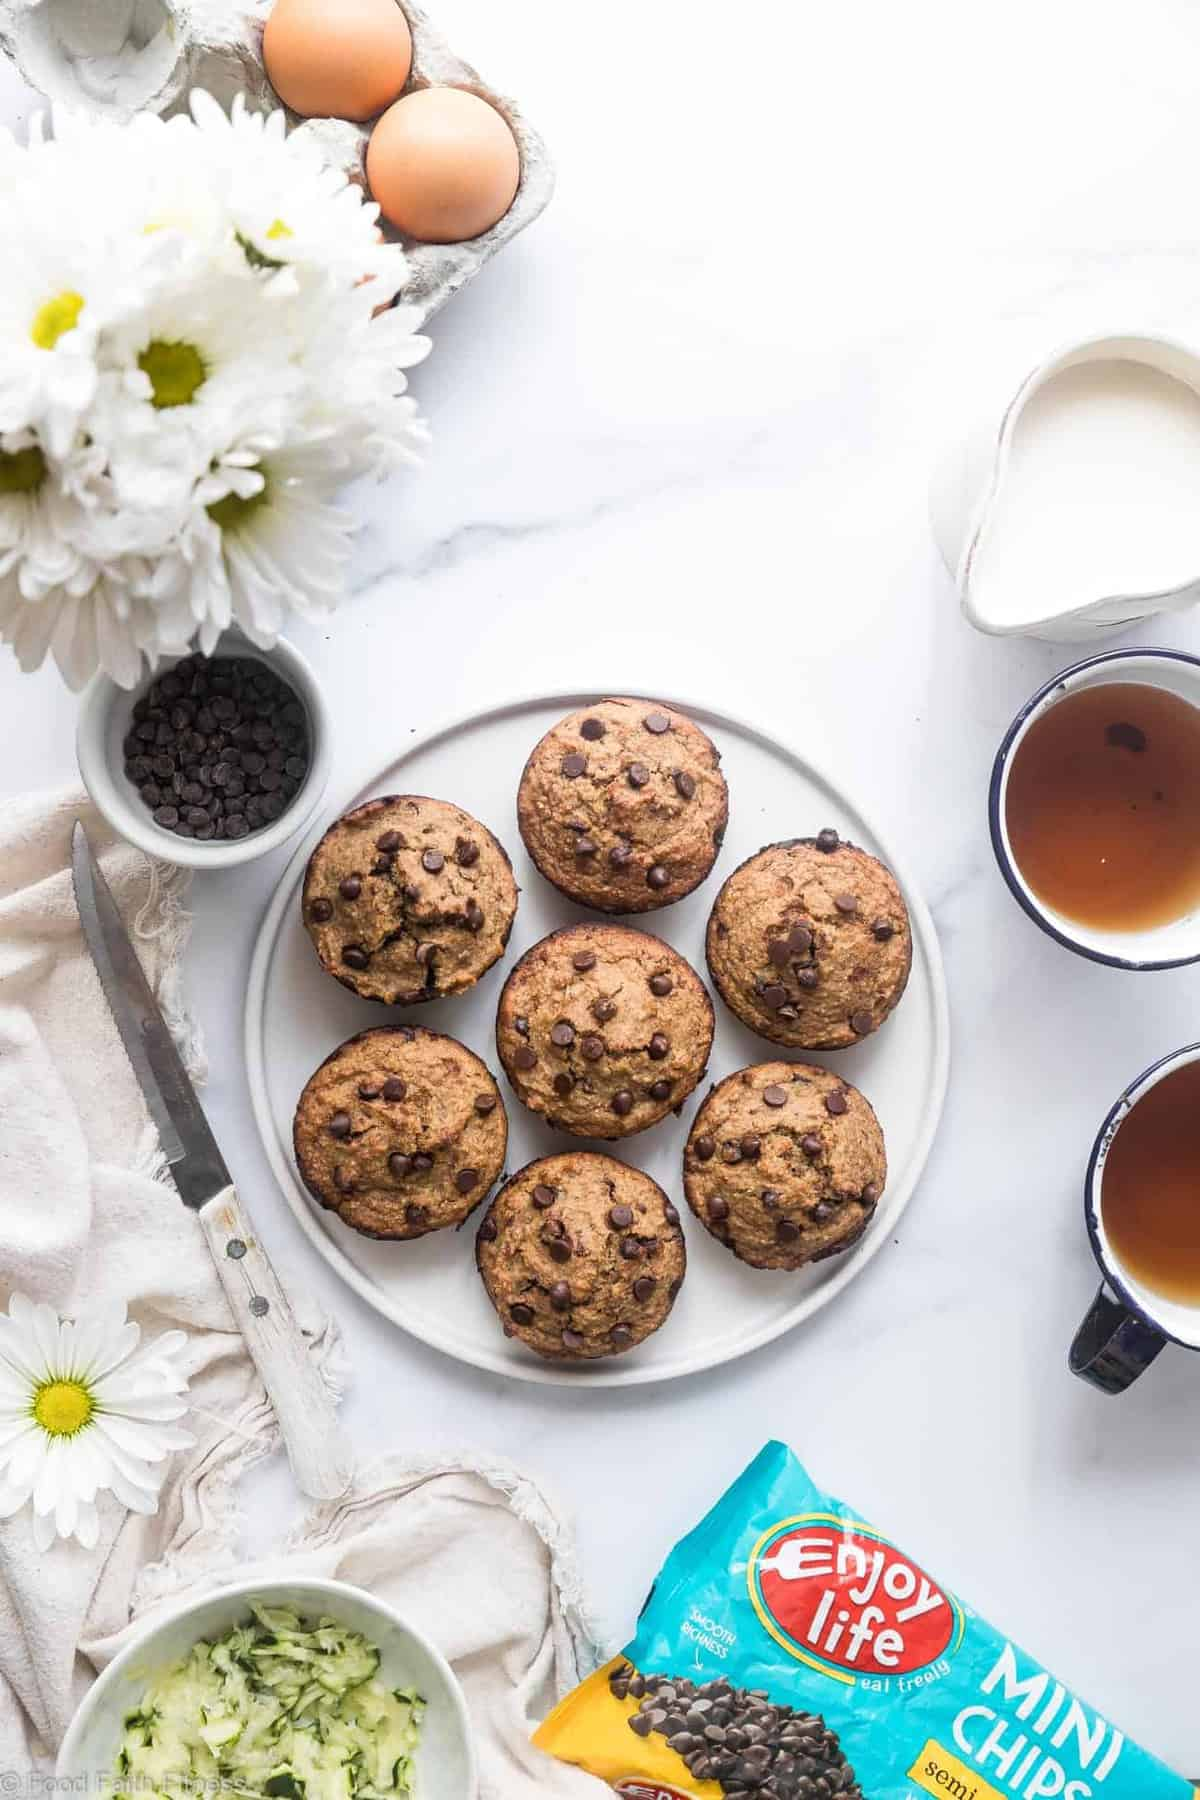 Healthy Gluten Free Zucchini Muffins - These dairy free Zucchini Muffins are fluffy and gluten, dairy, oil and sugar free! Sweetened with dates, studded with chocolate chips and only 170 calories! Great for kids and adults!   #Foodfaithfitness   #Glutenfree #Dairyfree #Healthy #Zucchini #sugarfree